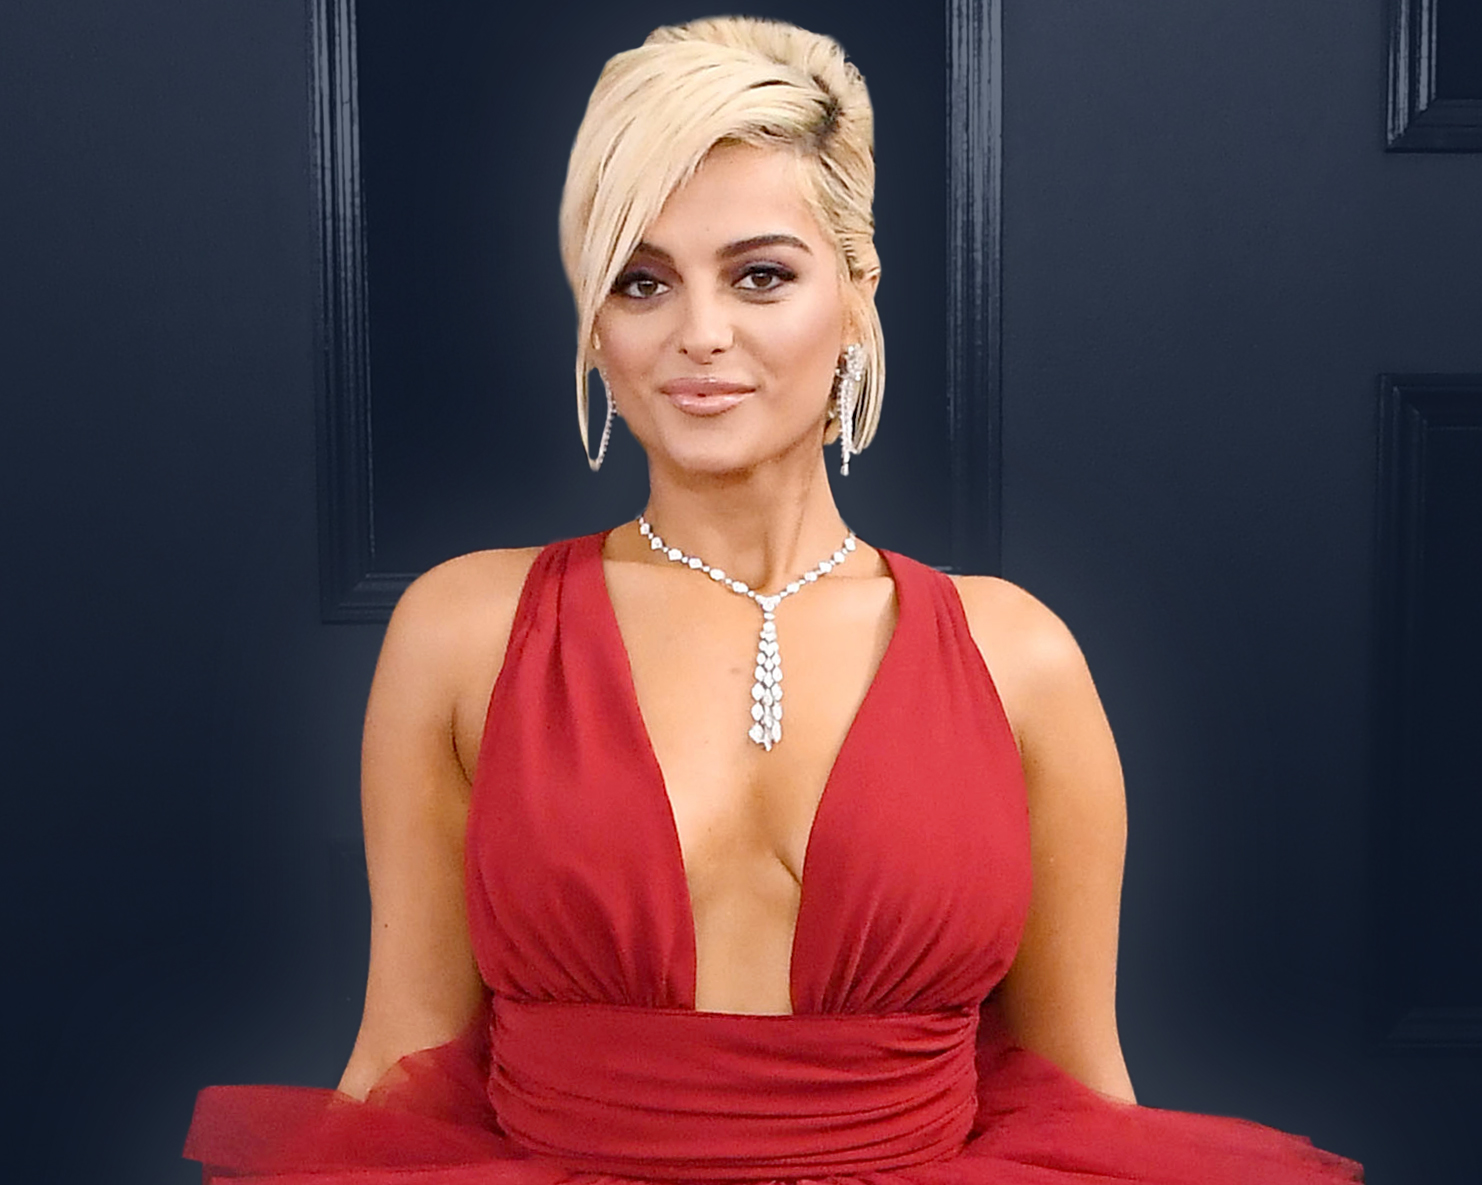 Exclusive: Bebe Rexha Reveals Her Ideal Bachelorette Party (Playlist Included!)